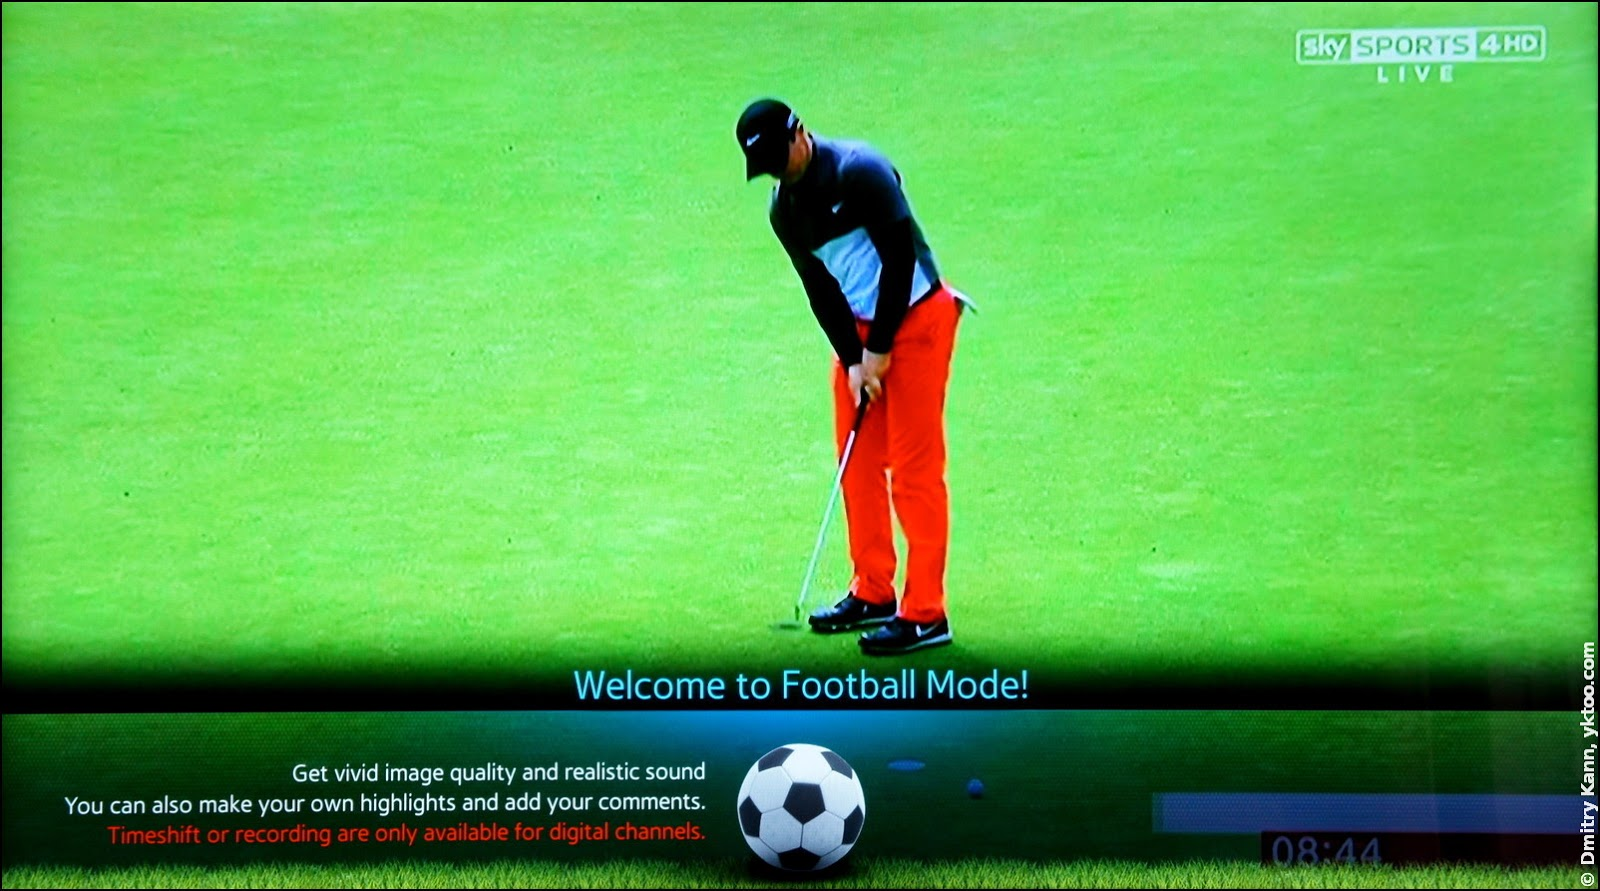 Golf in the Football Mode.